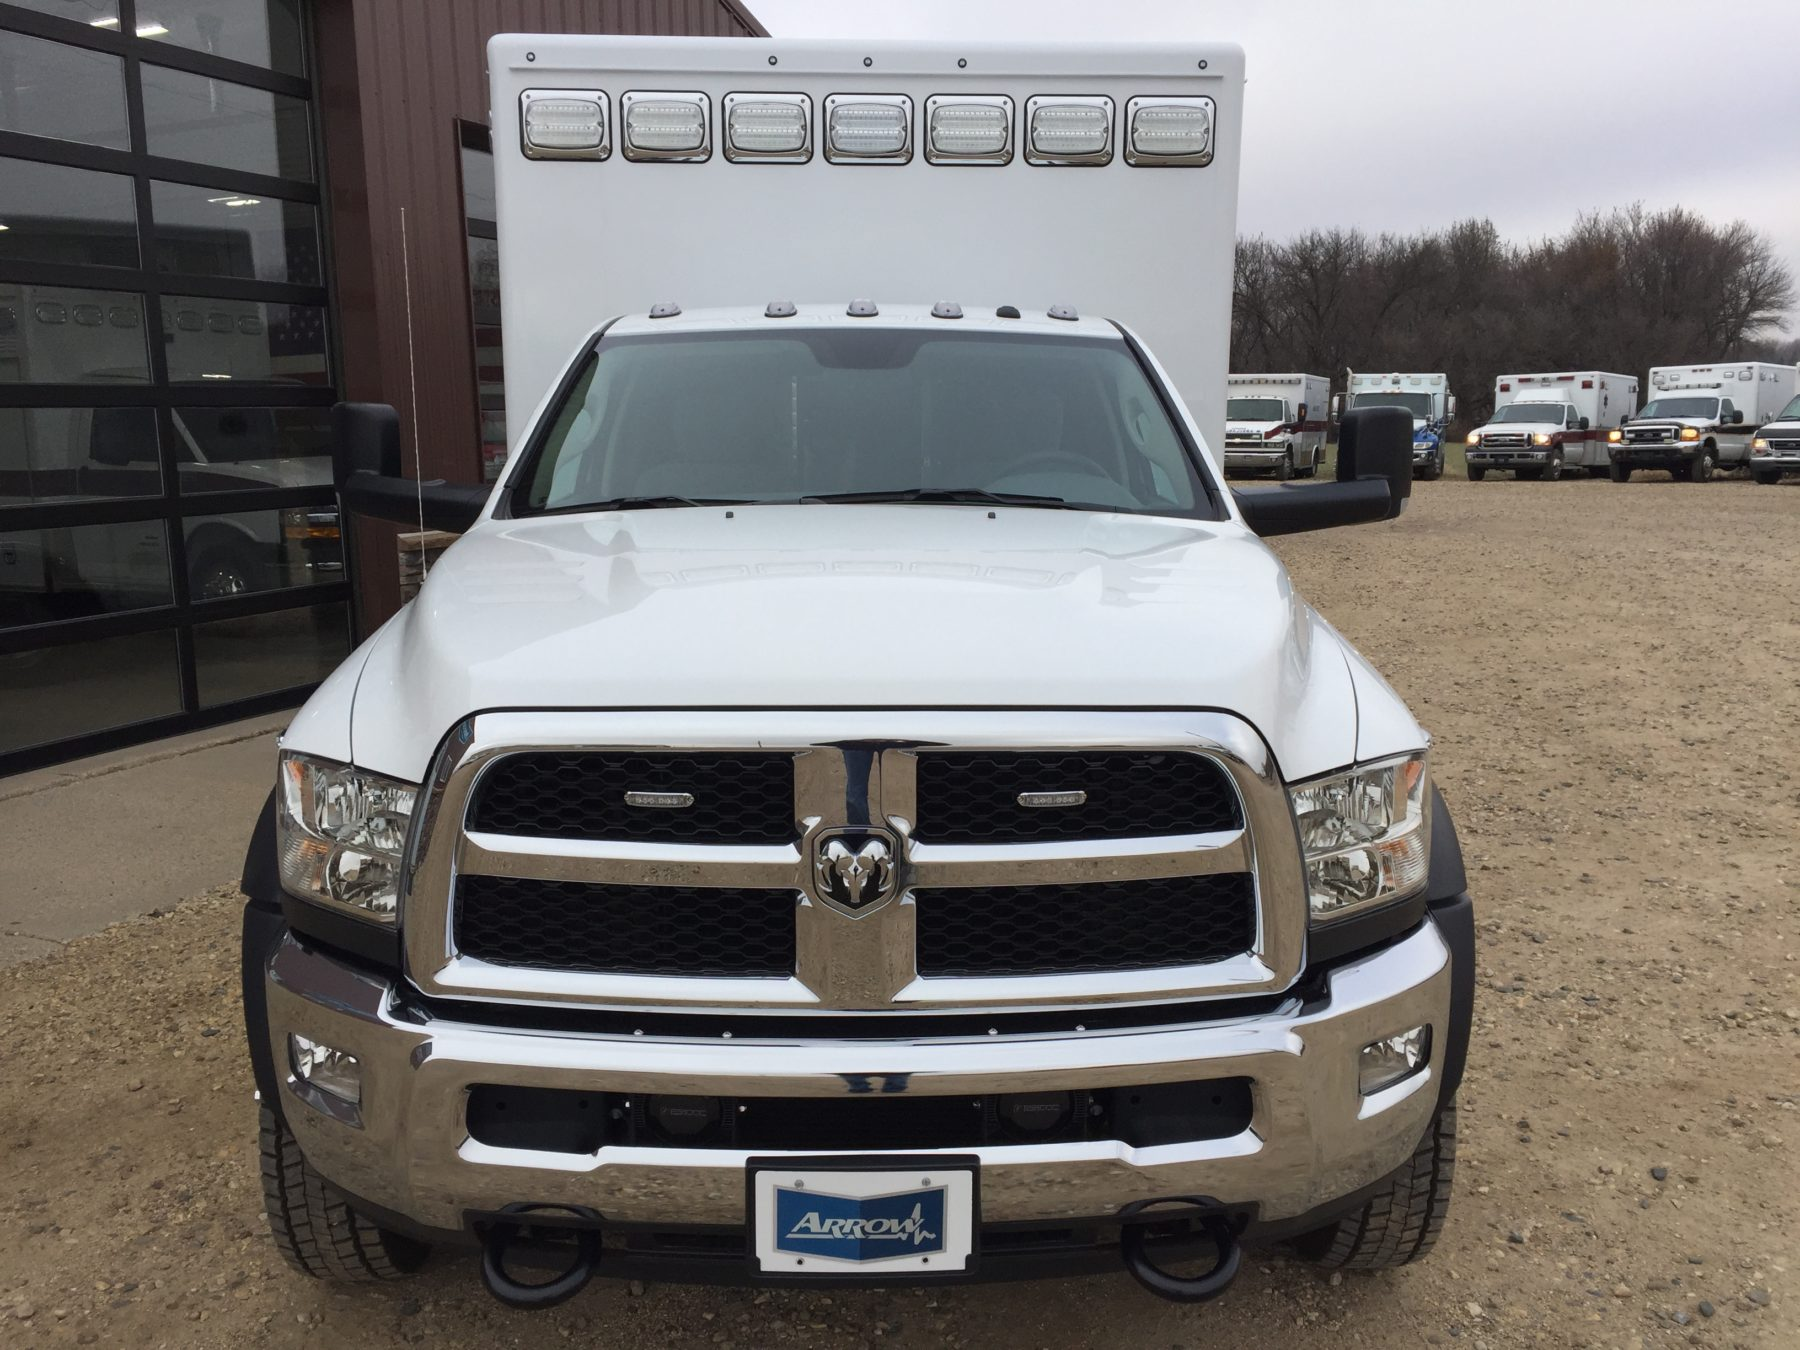 2018 Ram 4500 4x4 Heavy Duty Ambulance For Sale – Picture 7